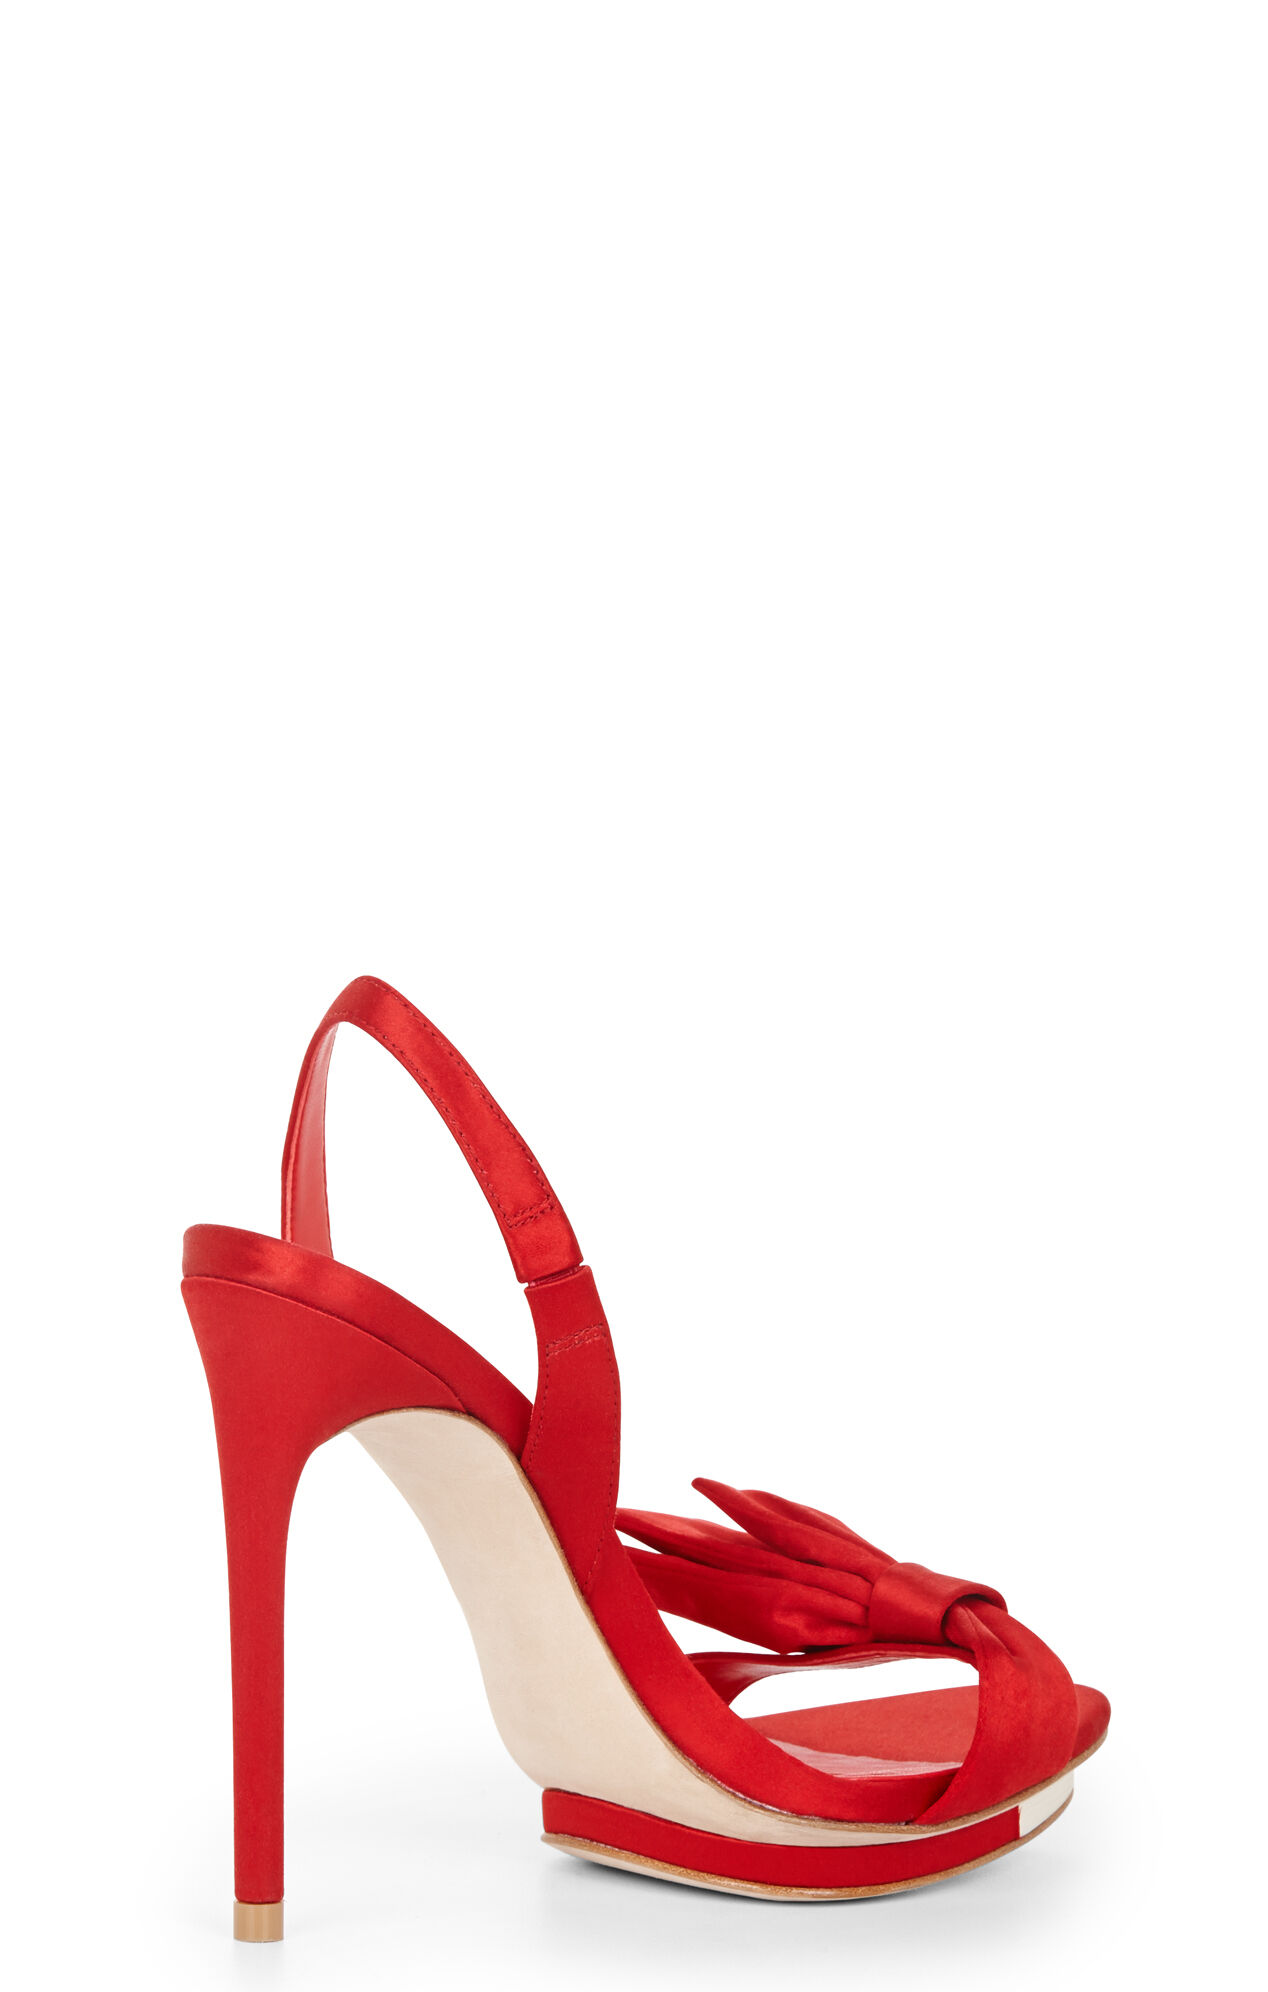 Lavi Bow Sling-Back High-Heel Shoe